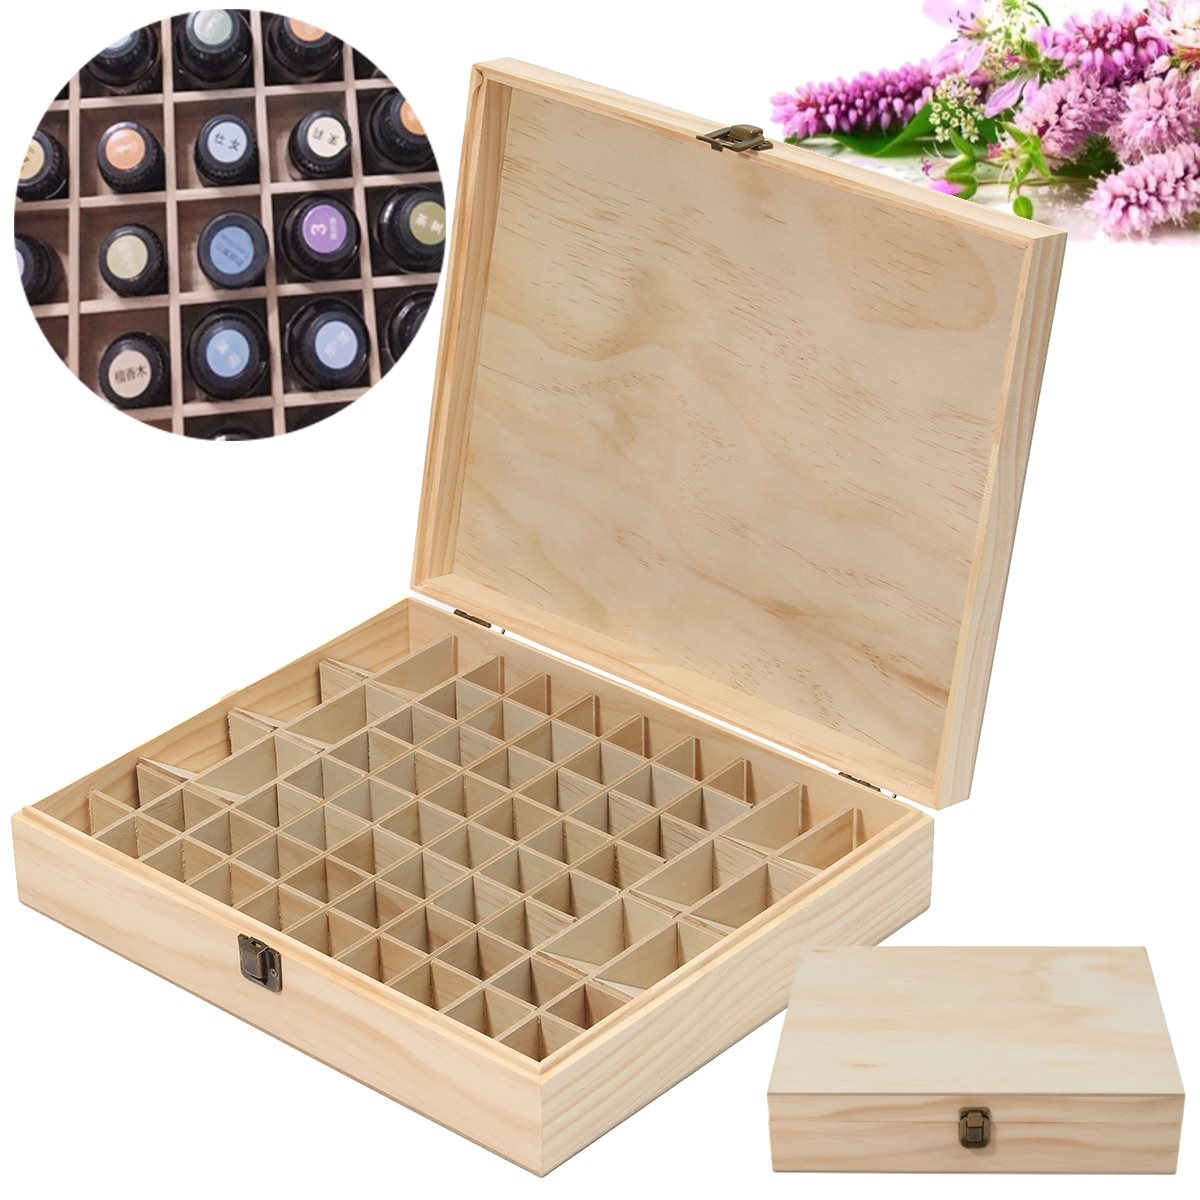 wooden box case 68 essential oil bottles metal lock jewelry treasure container carry organizer storage - Metal Storage Containers